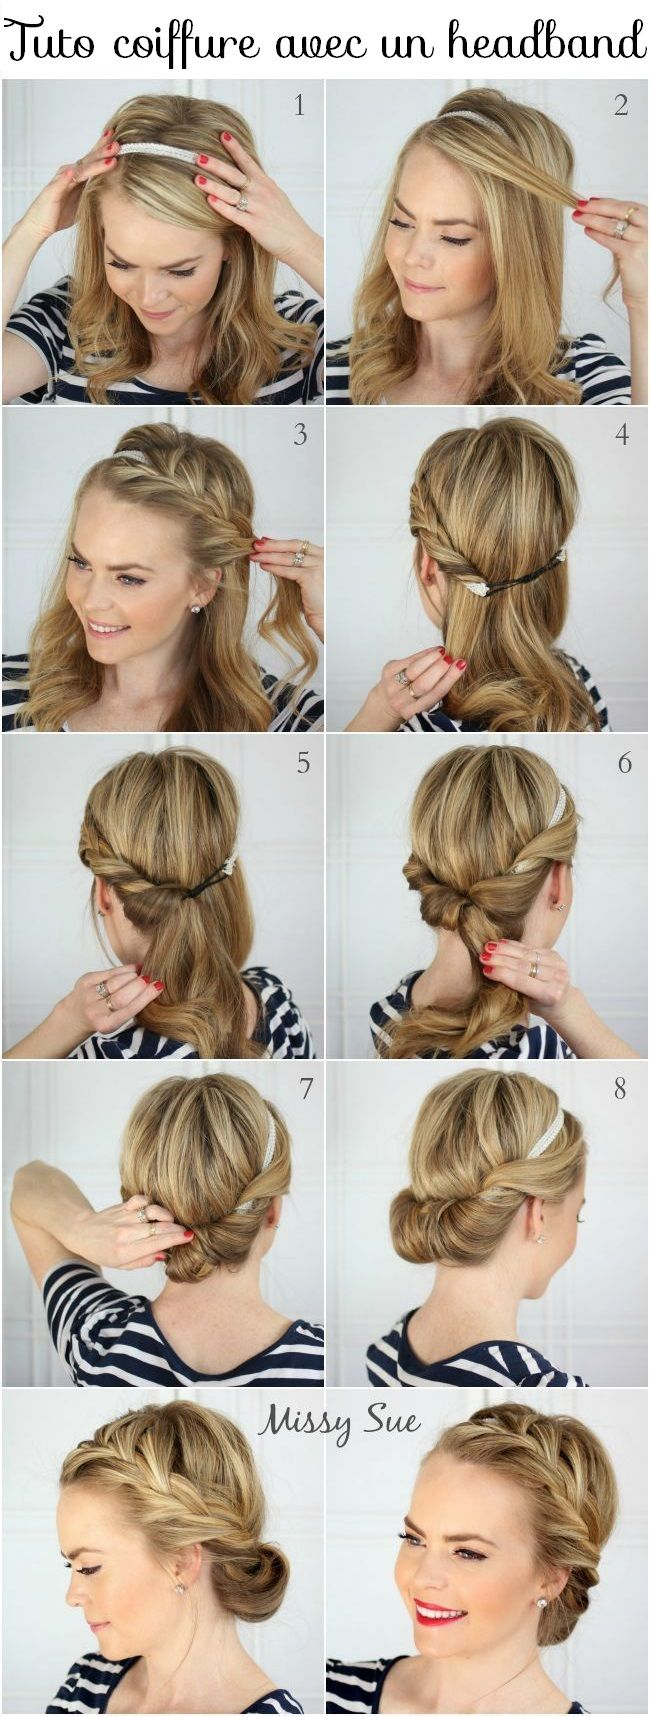 1000 Ideas About Chignon Headband On Pinterest Coiffure Chignon